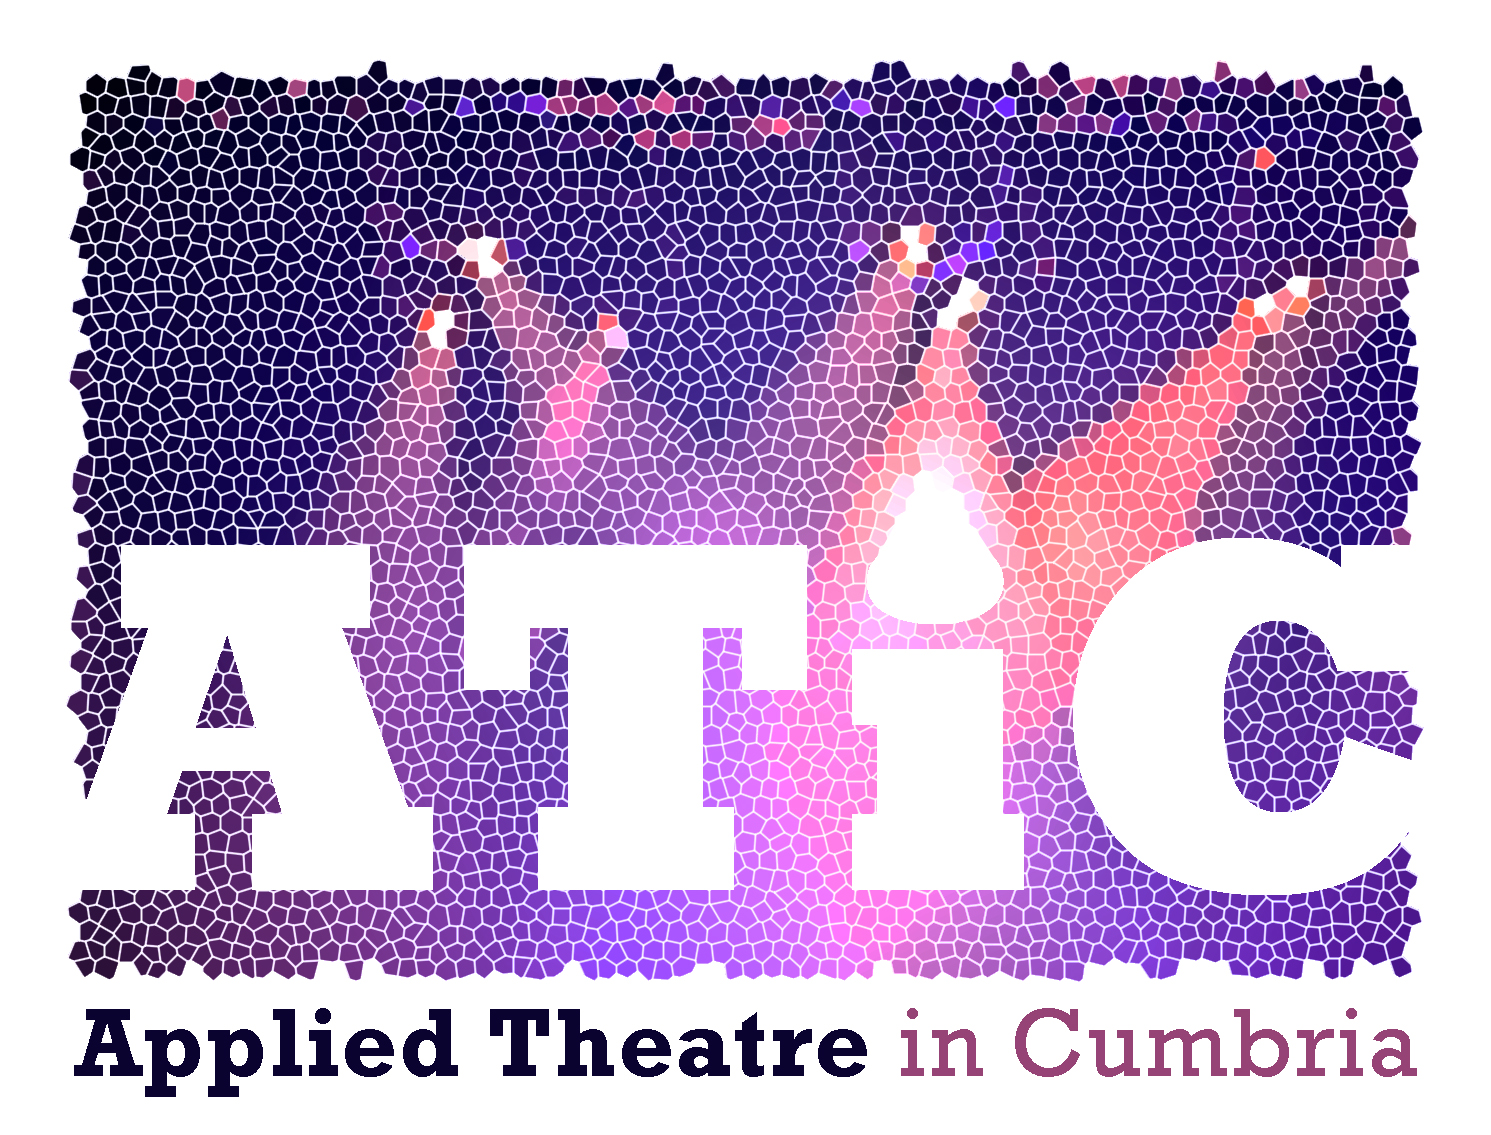 Atic Applied Theatre in Cumbria